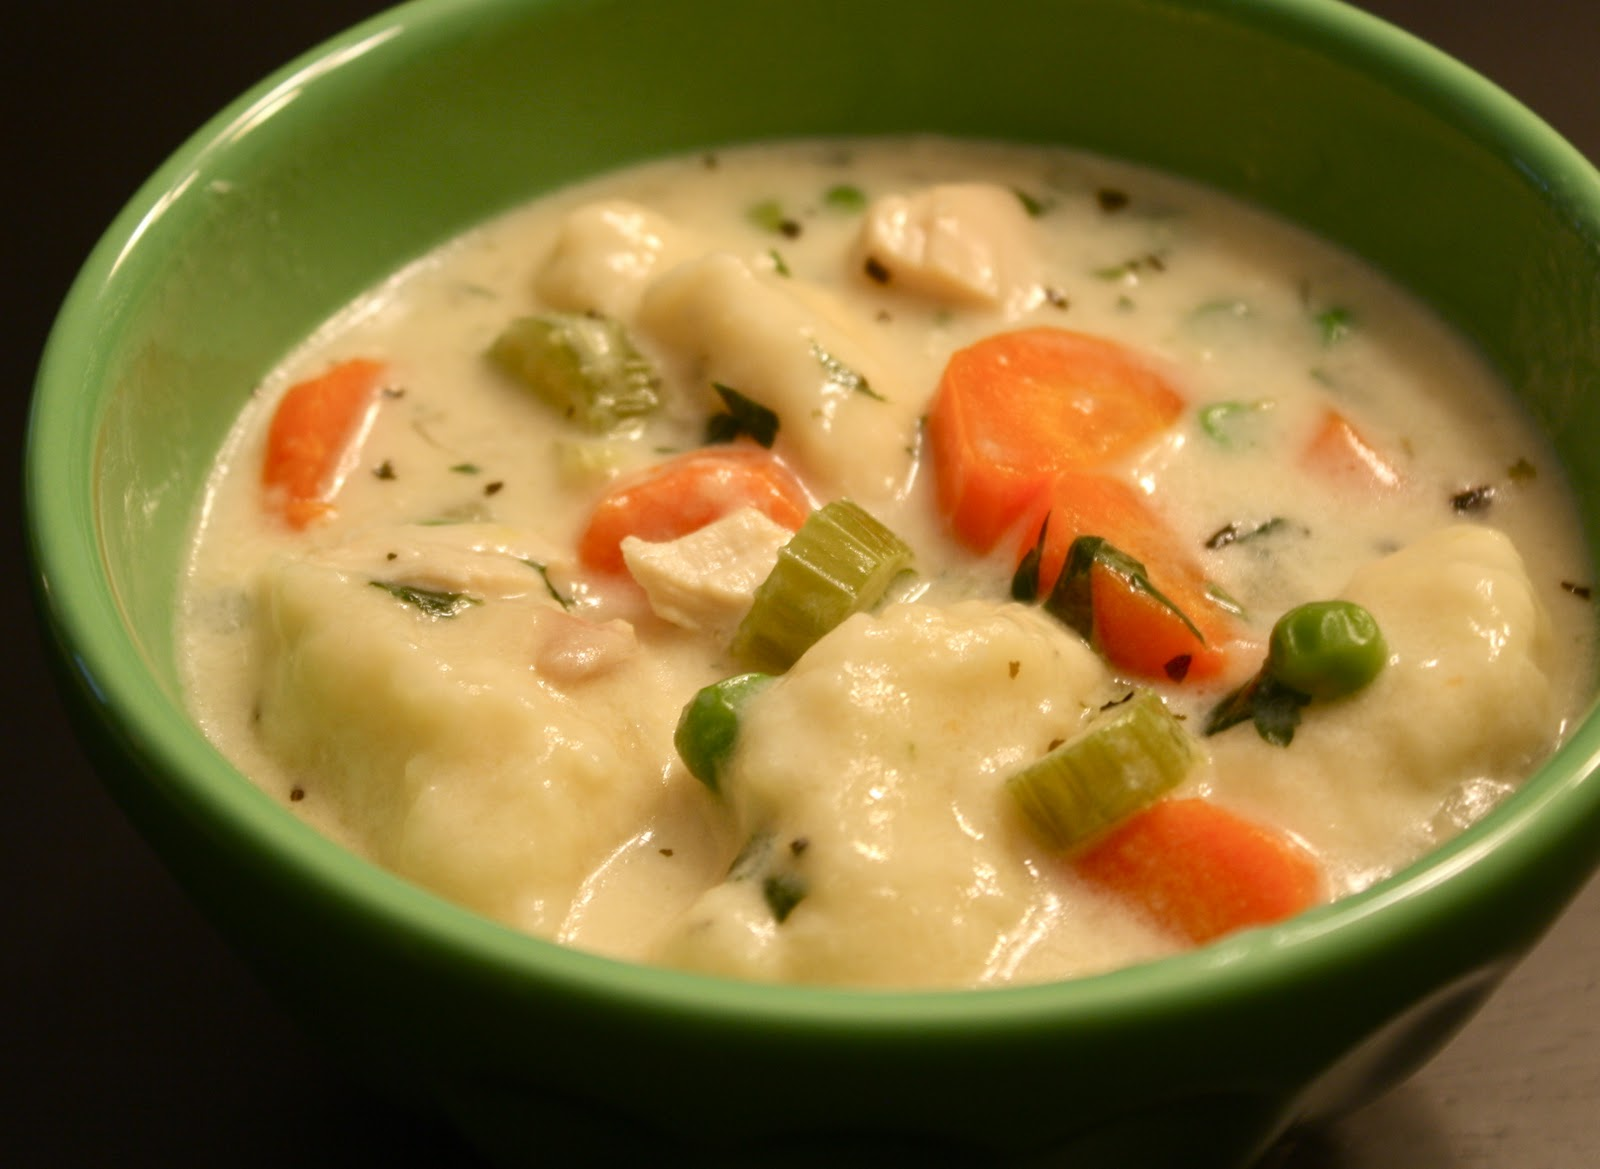 Kuki's Kookbook: Chicken and Dumplings